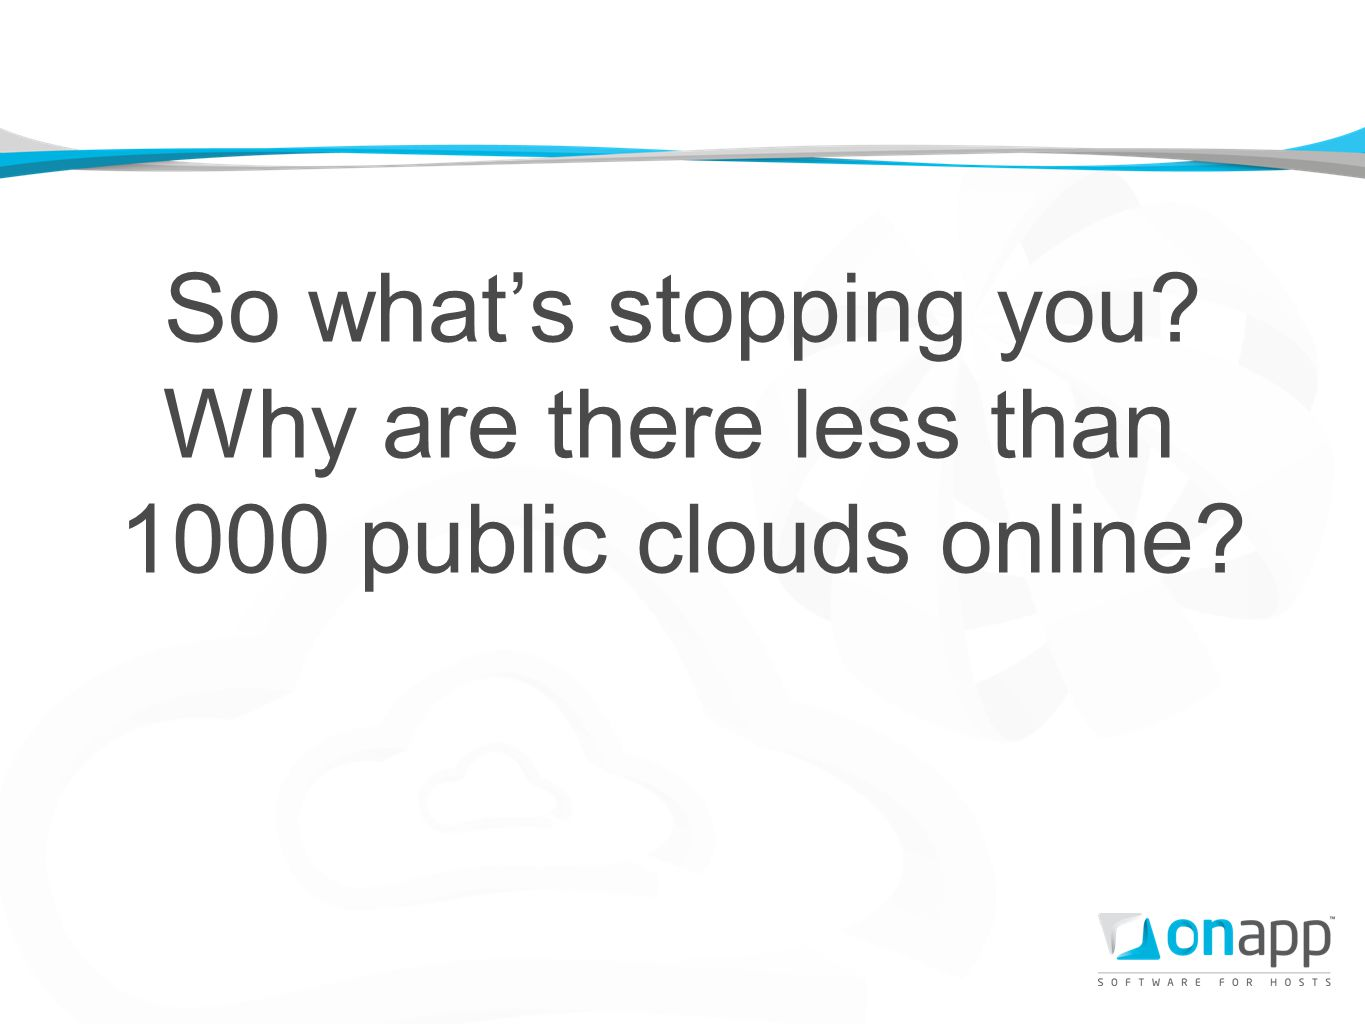 So whats stopping you? Why are there less than 1000 public clouds online?